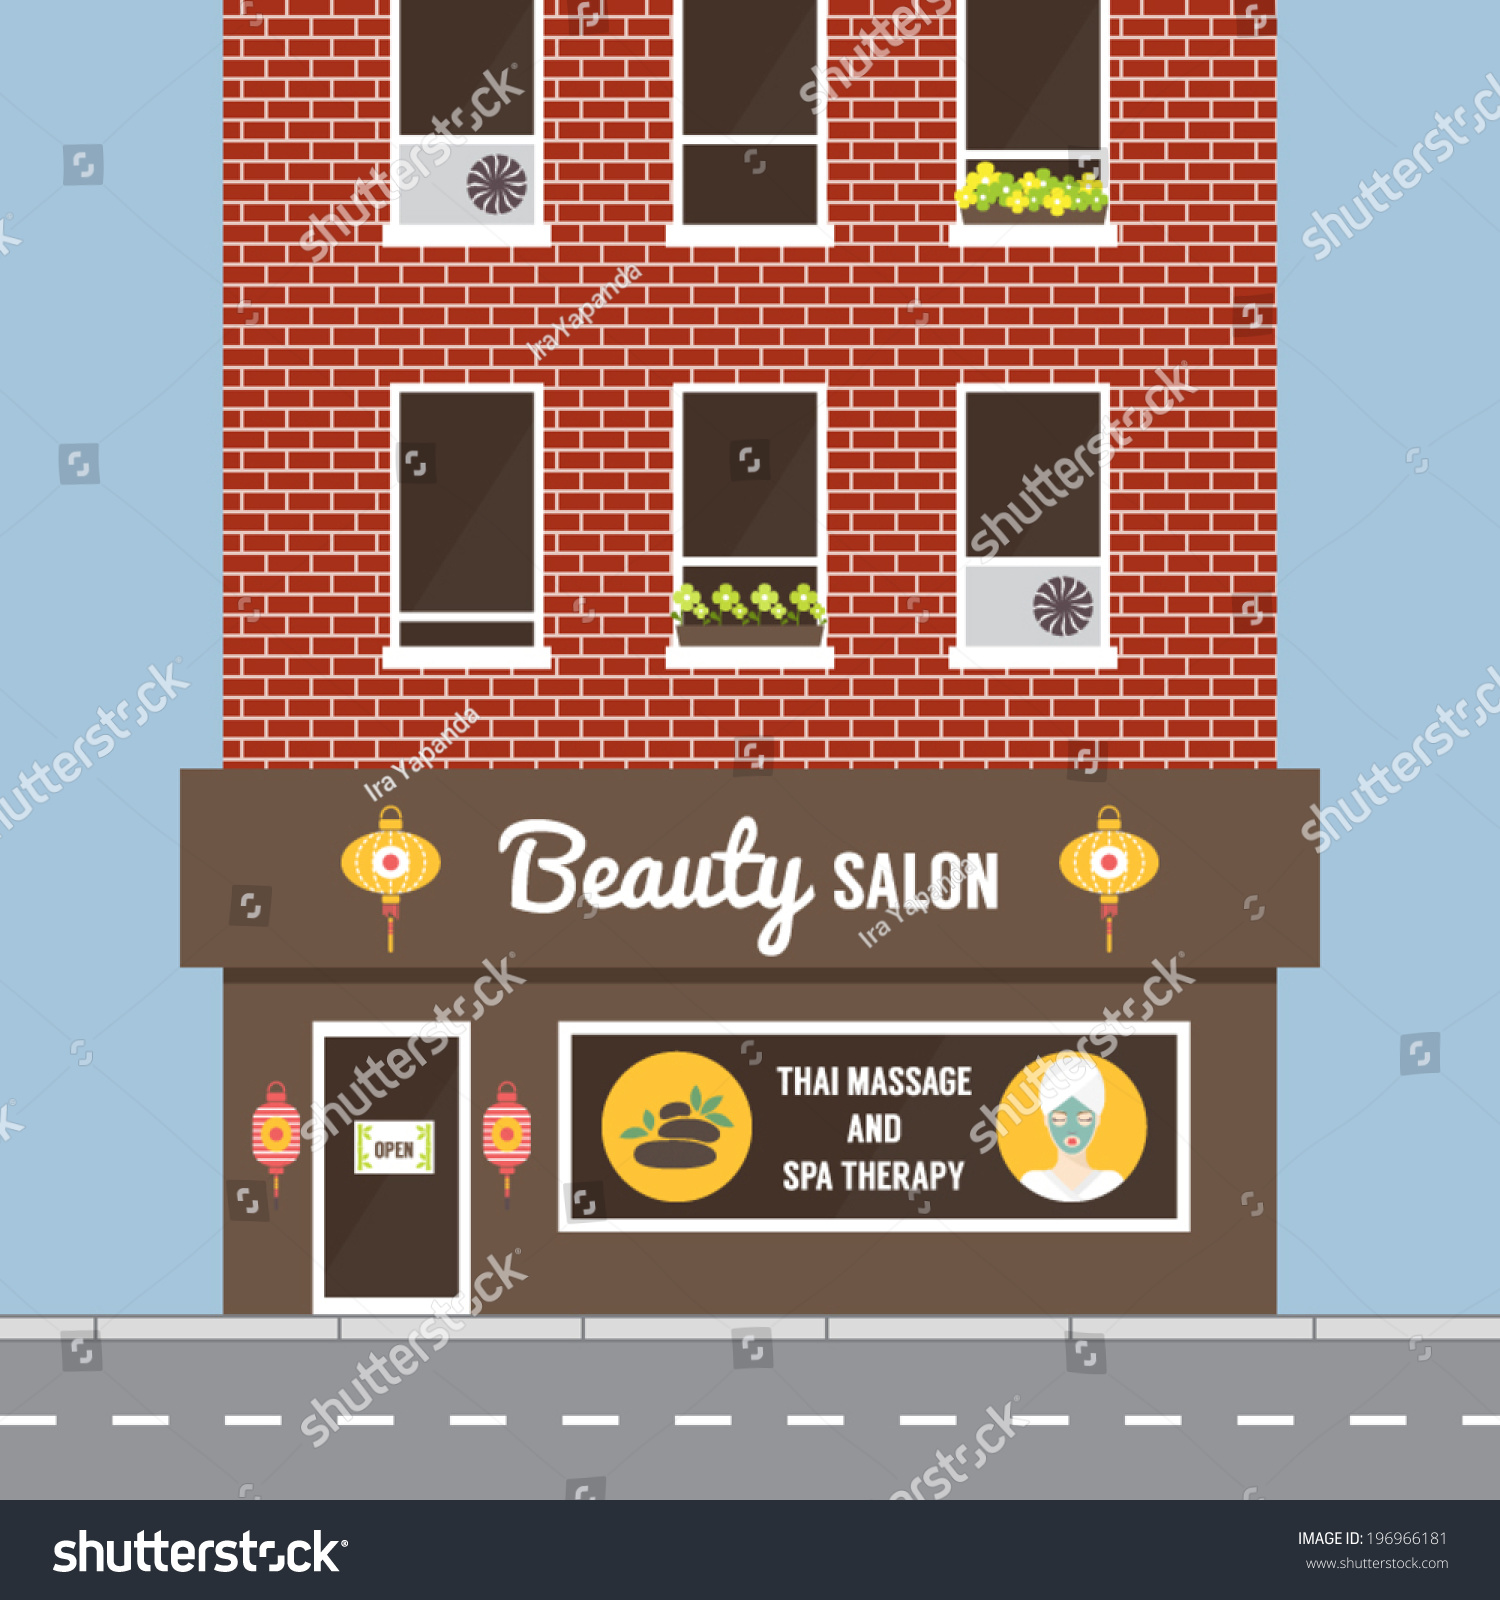 Beauty Salon Facade Building Exterior Spa In Oriental Style Flat Design Vector